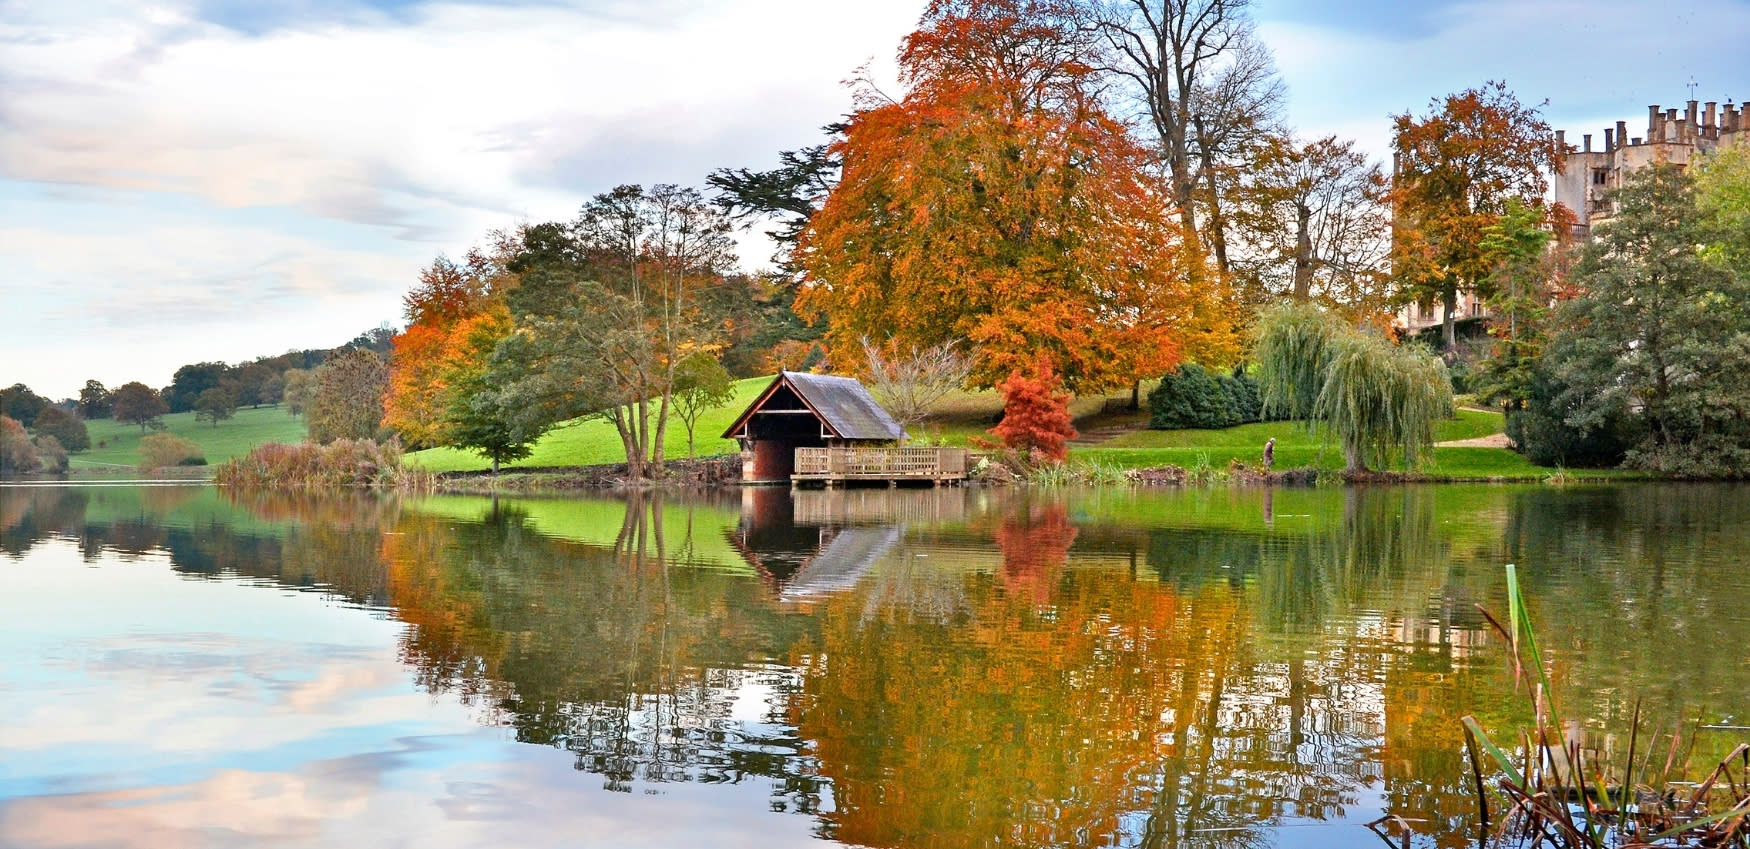 Autumn tree colours reflecting in the lake at Sherborne Castle and Gardens